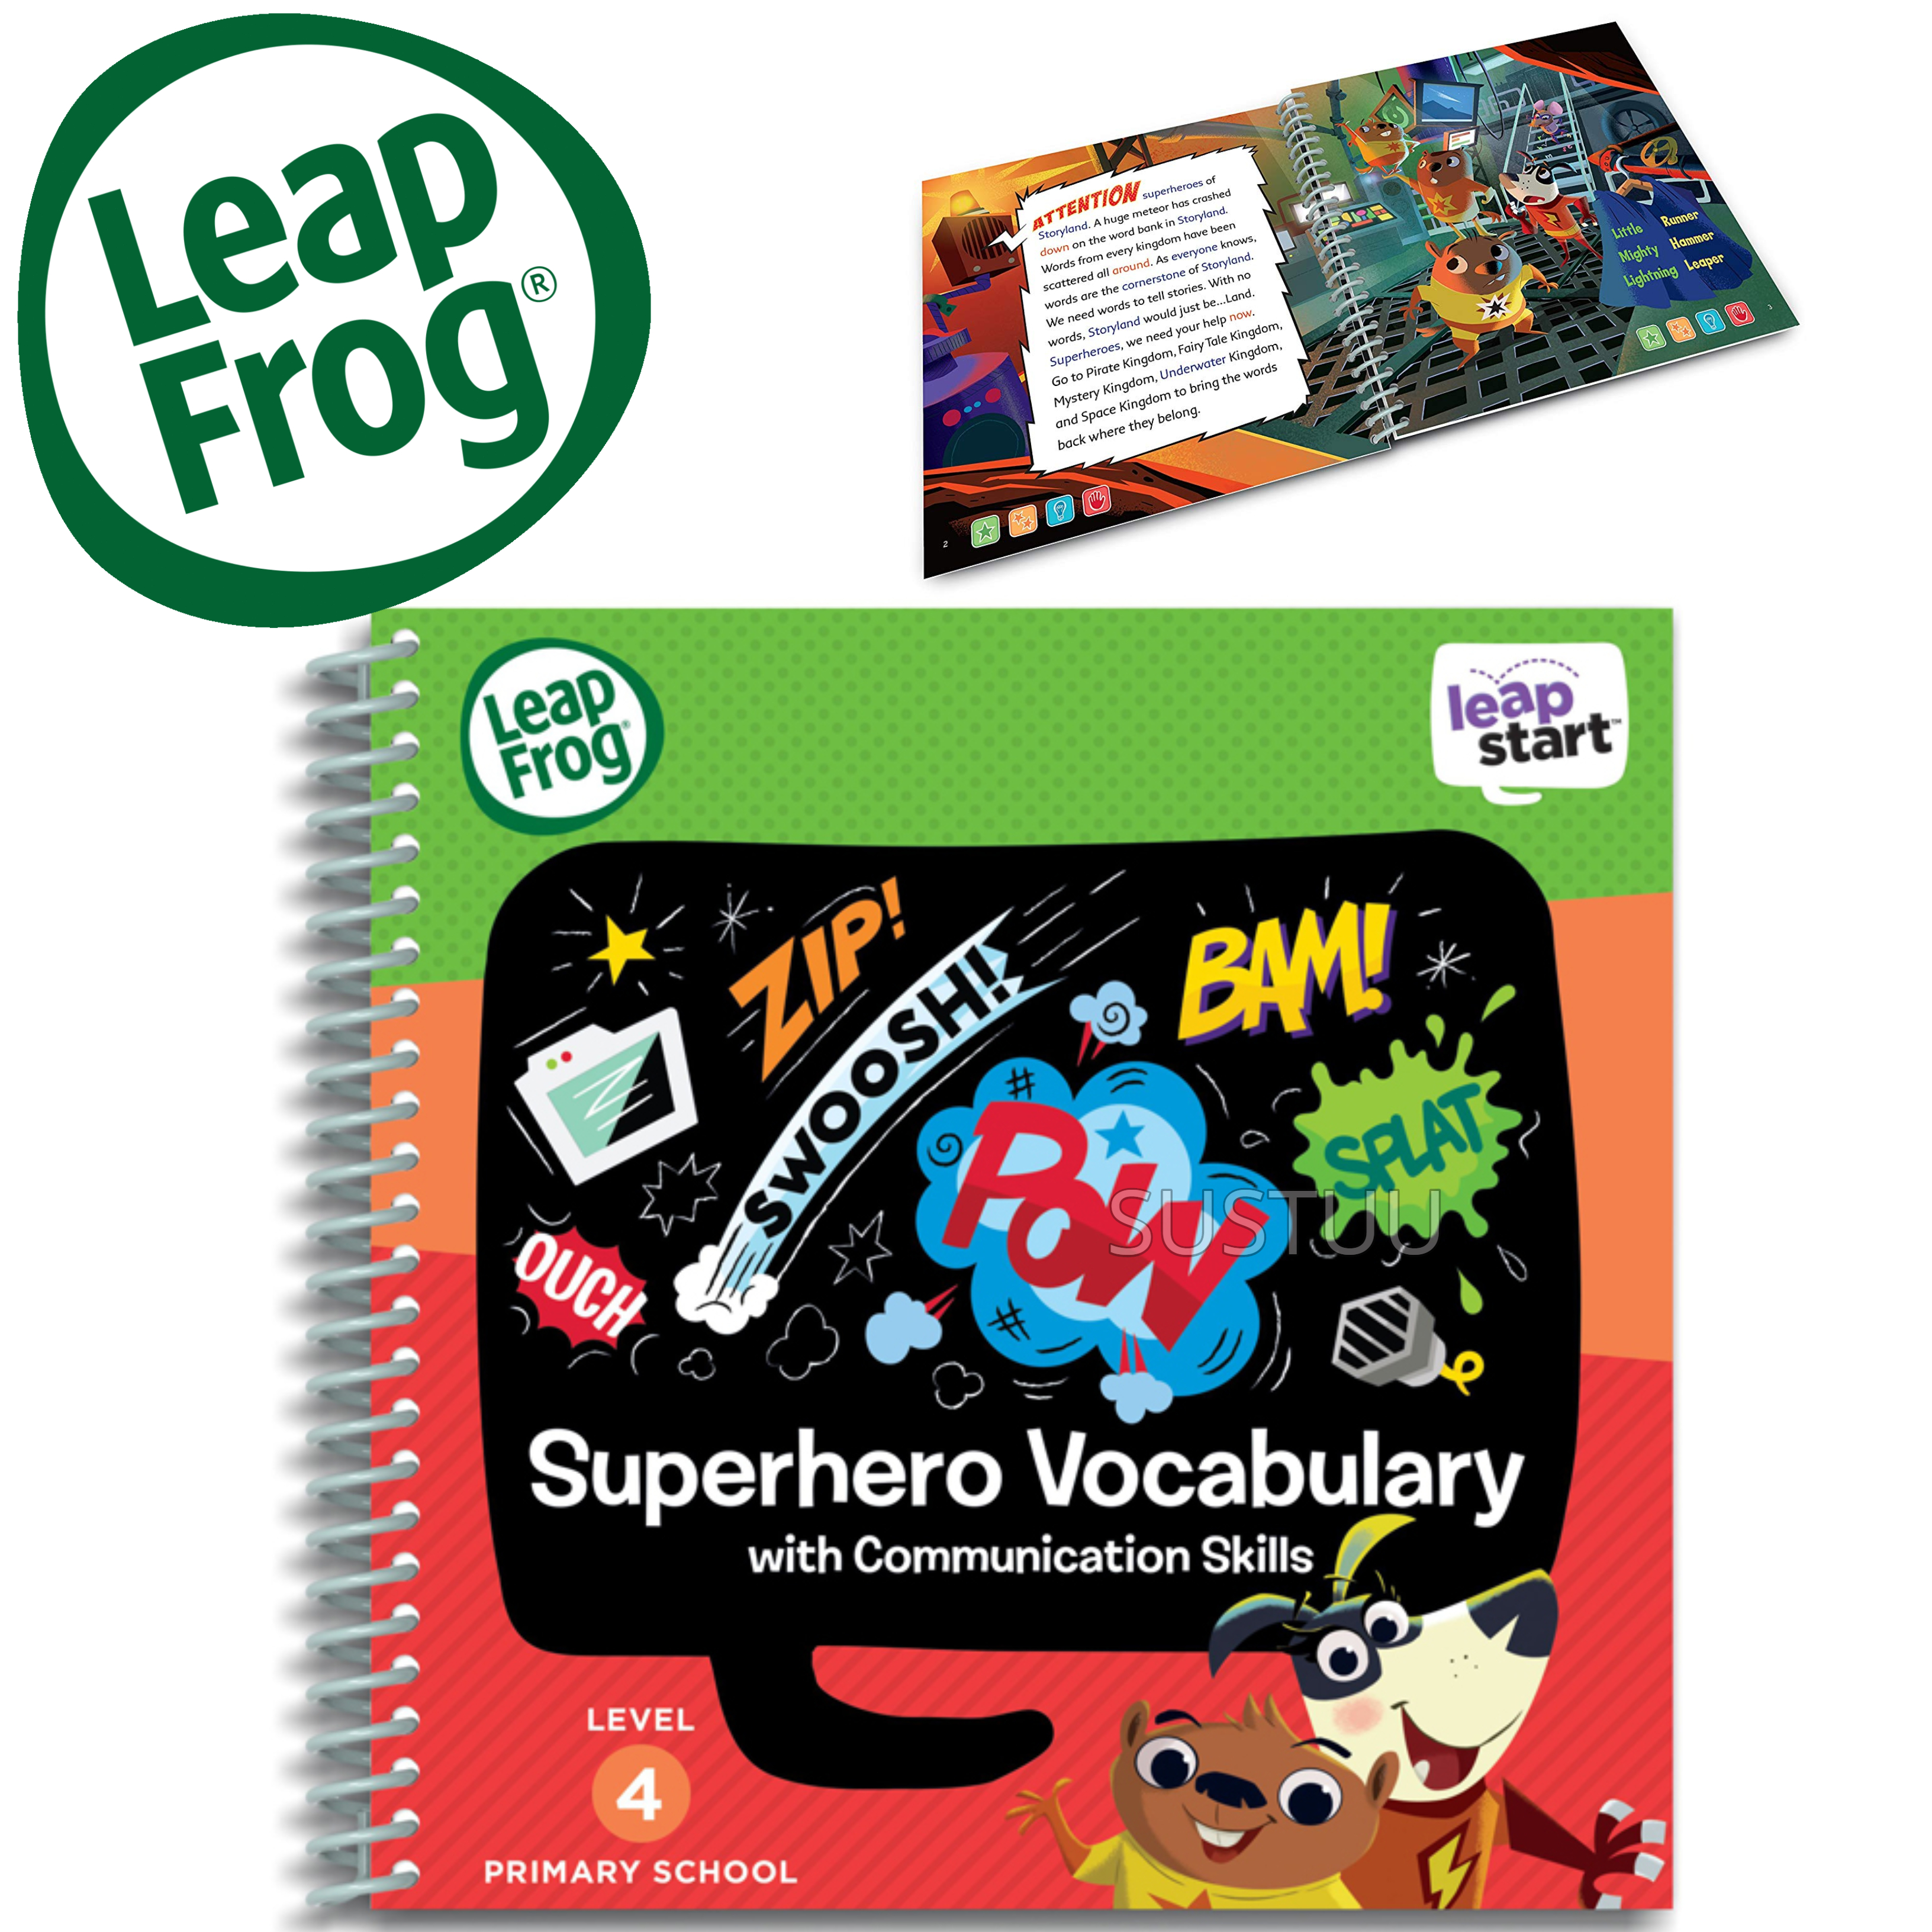 Leap Frog LeapStart Superhero Vocabulary Activity Book | 30+ Replayable Activities | +5 Years